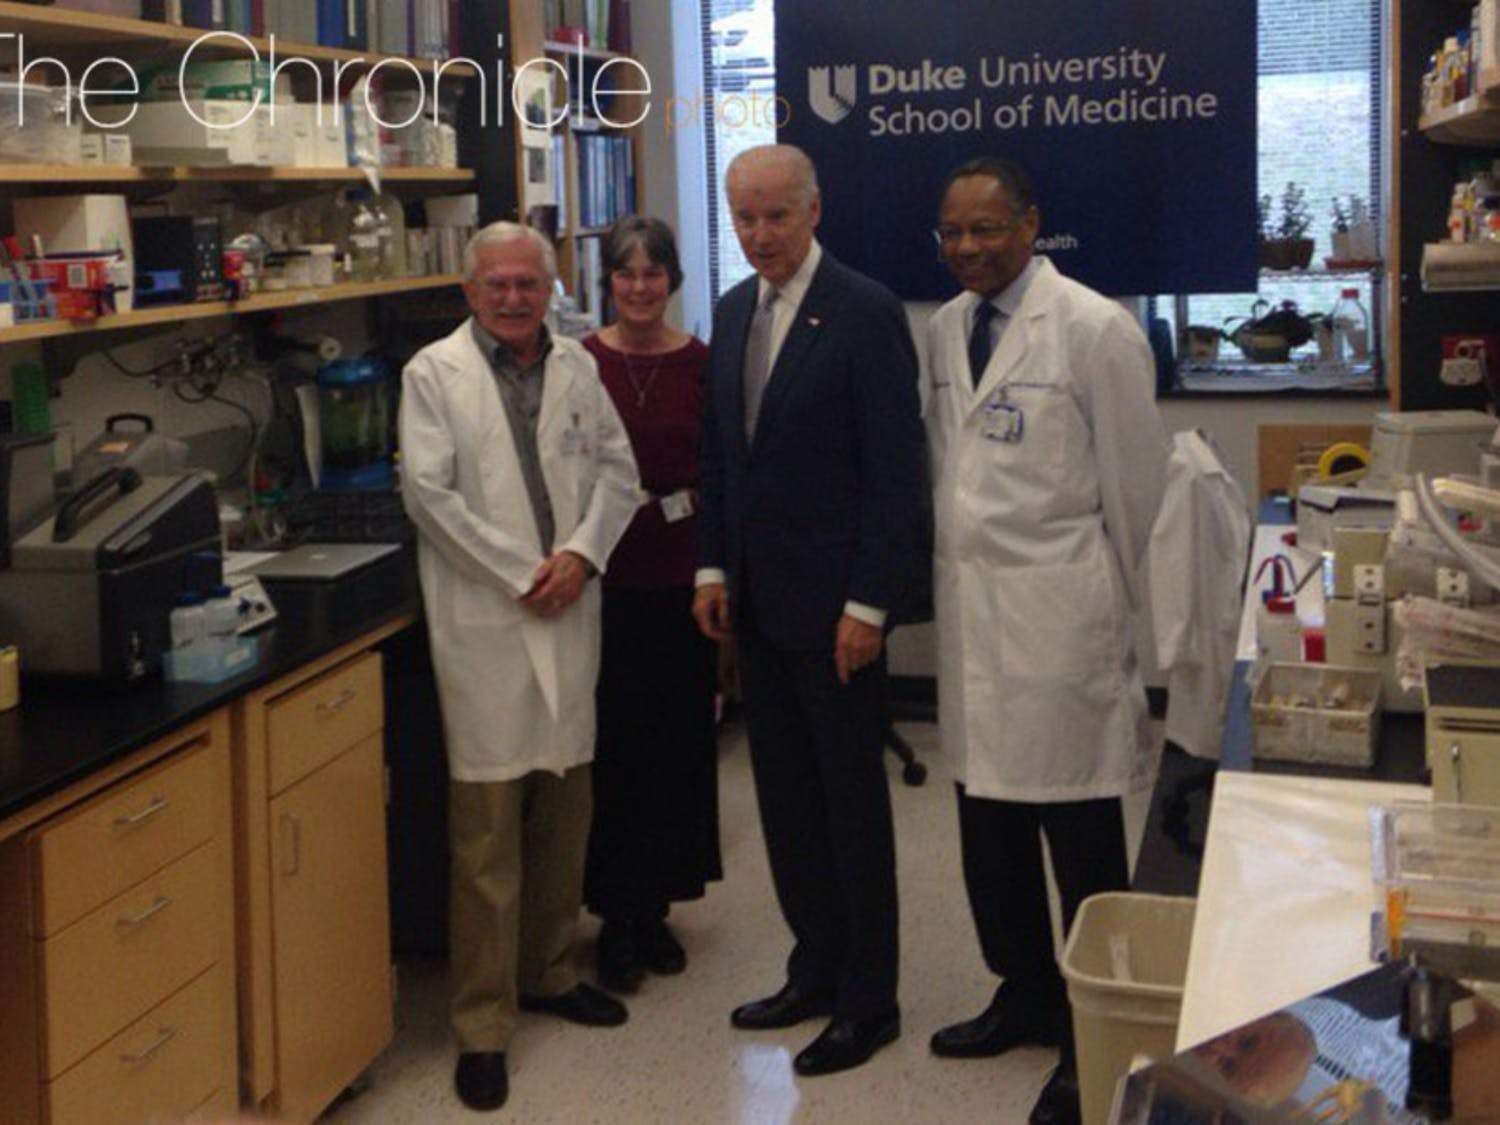 Before Wednesday's round table discussion, Biden chatted with Modrich, Modrich's wife Vickers Burdett and Chancellor for Health Affairs Dr. A. Eugene Washington.